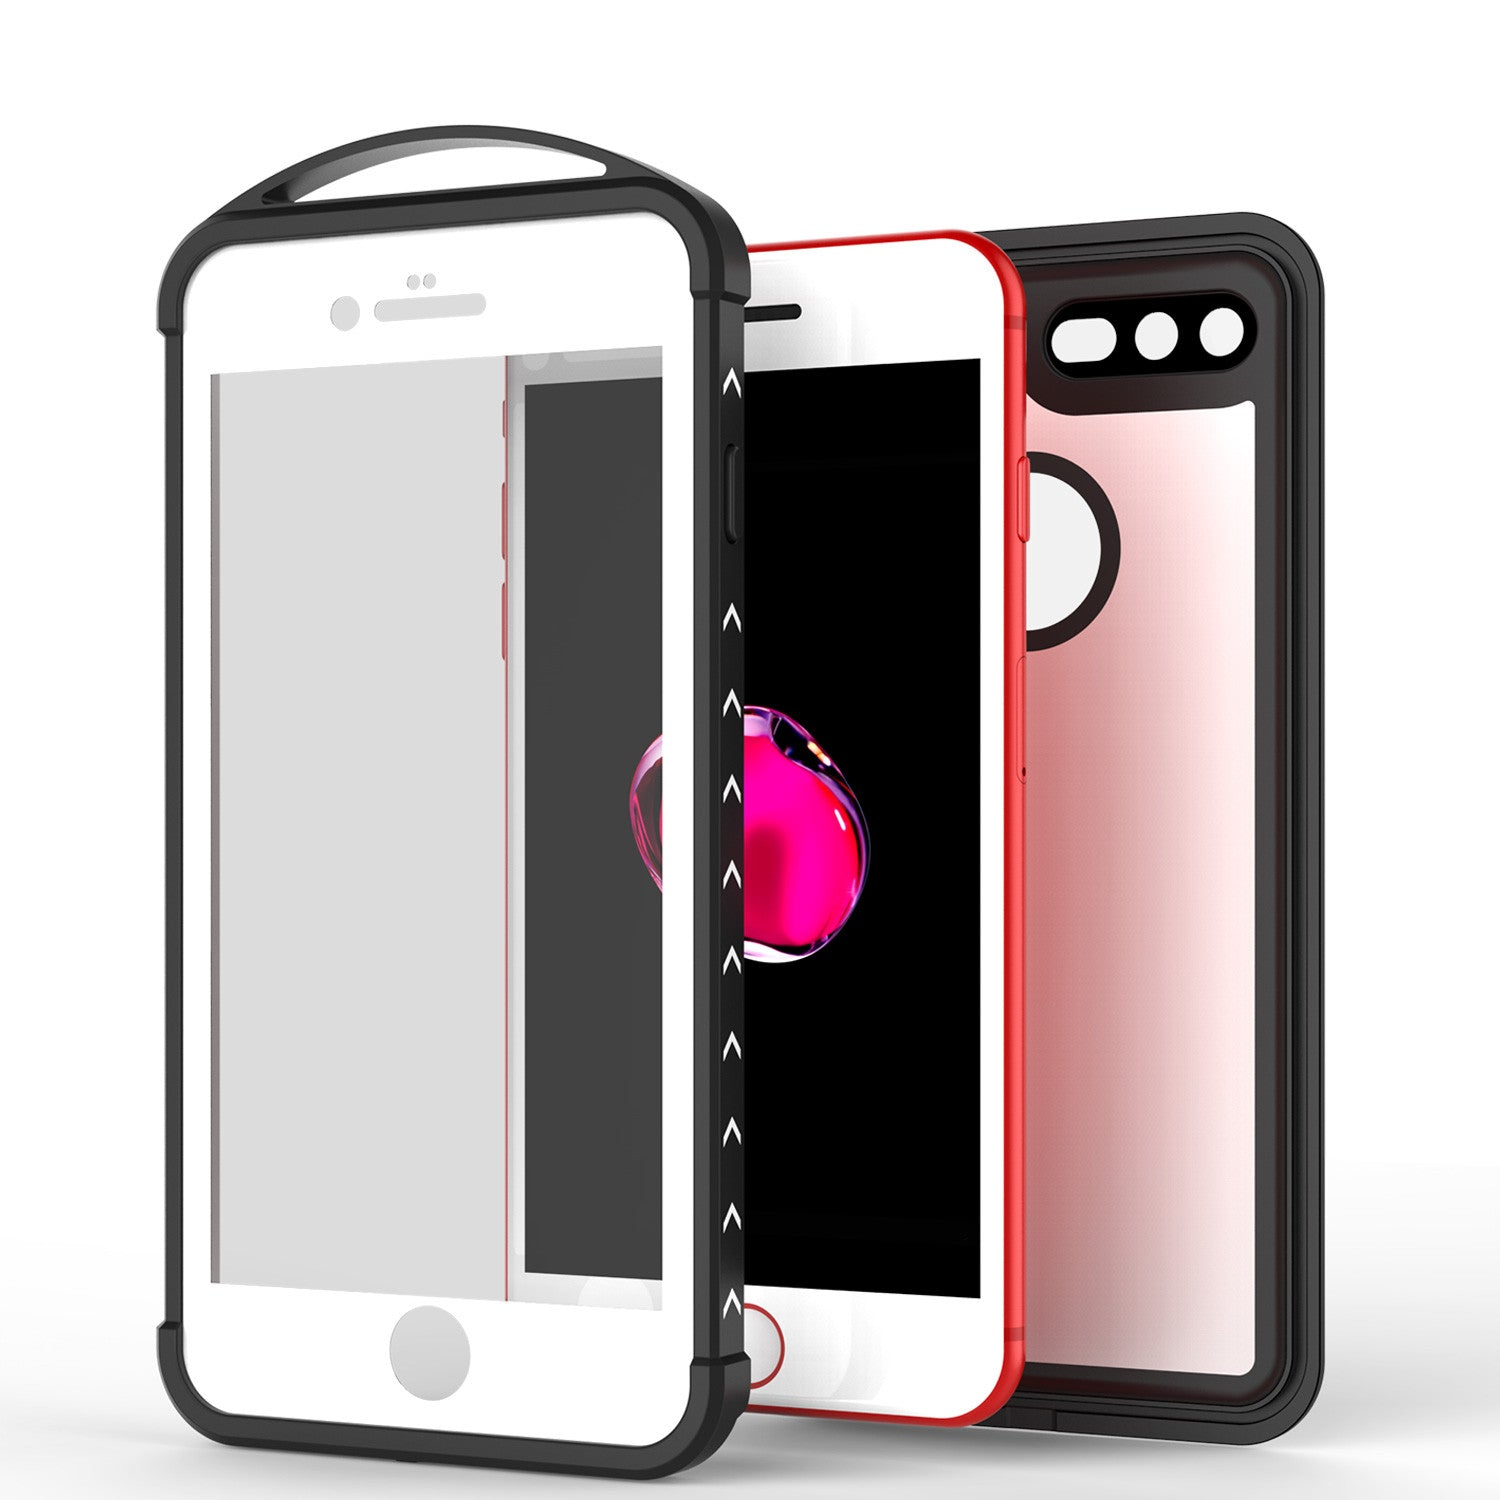 iPhone 7+ Plus Waterproof Case, Punkcase ALPINE Series, White | Heavy Duty Armor Cover